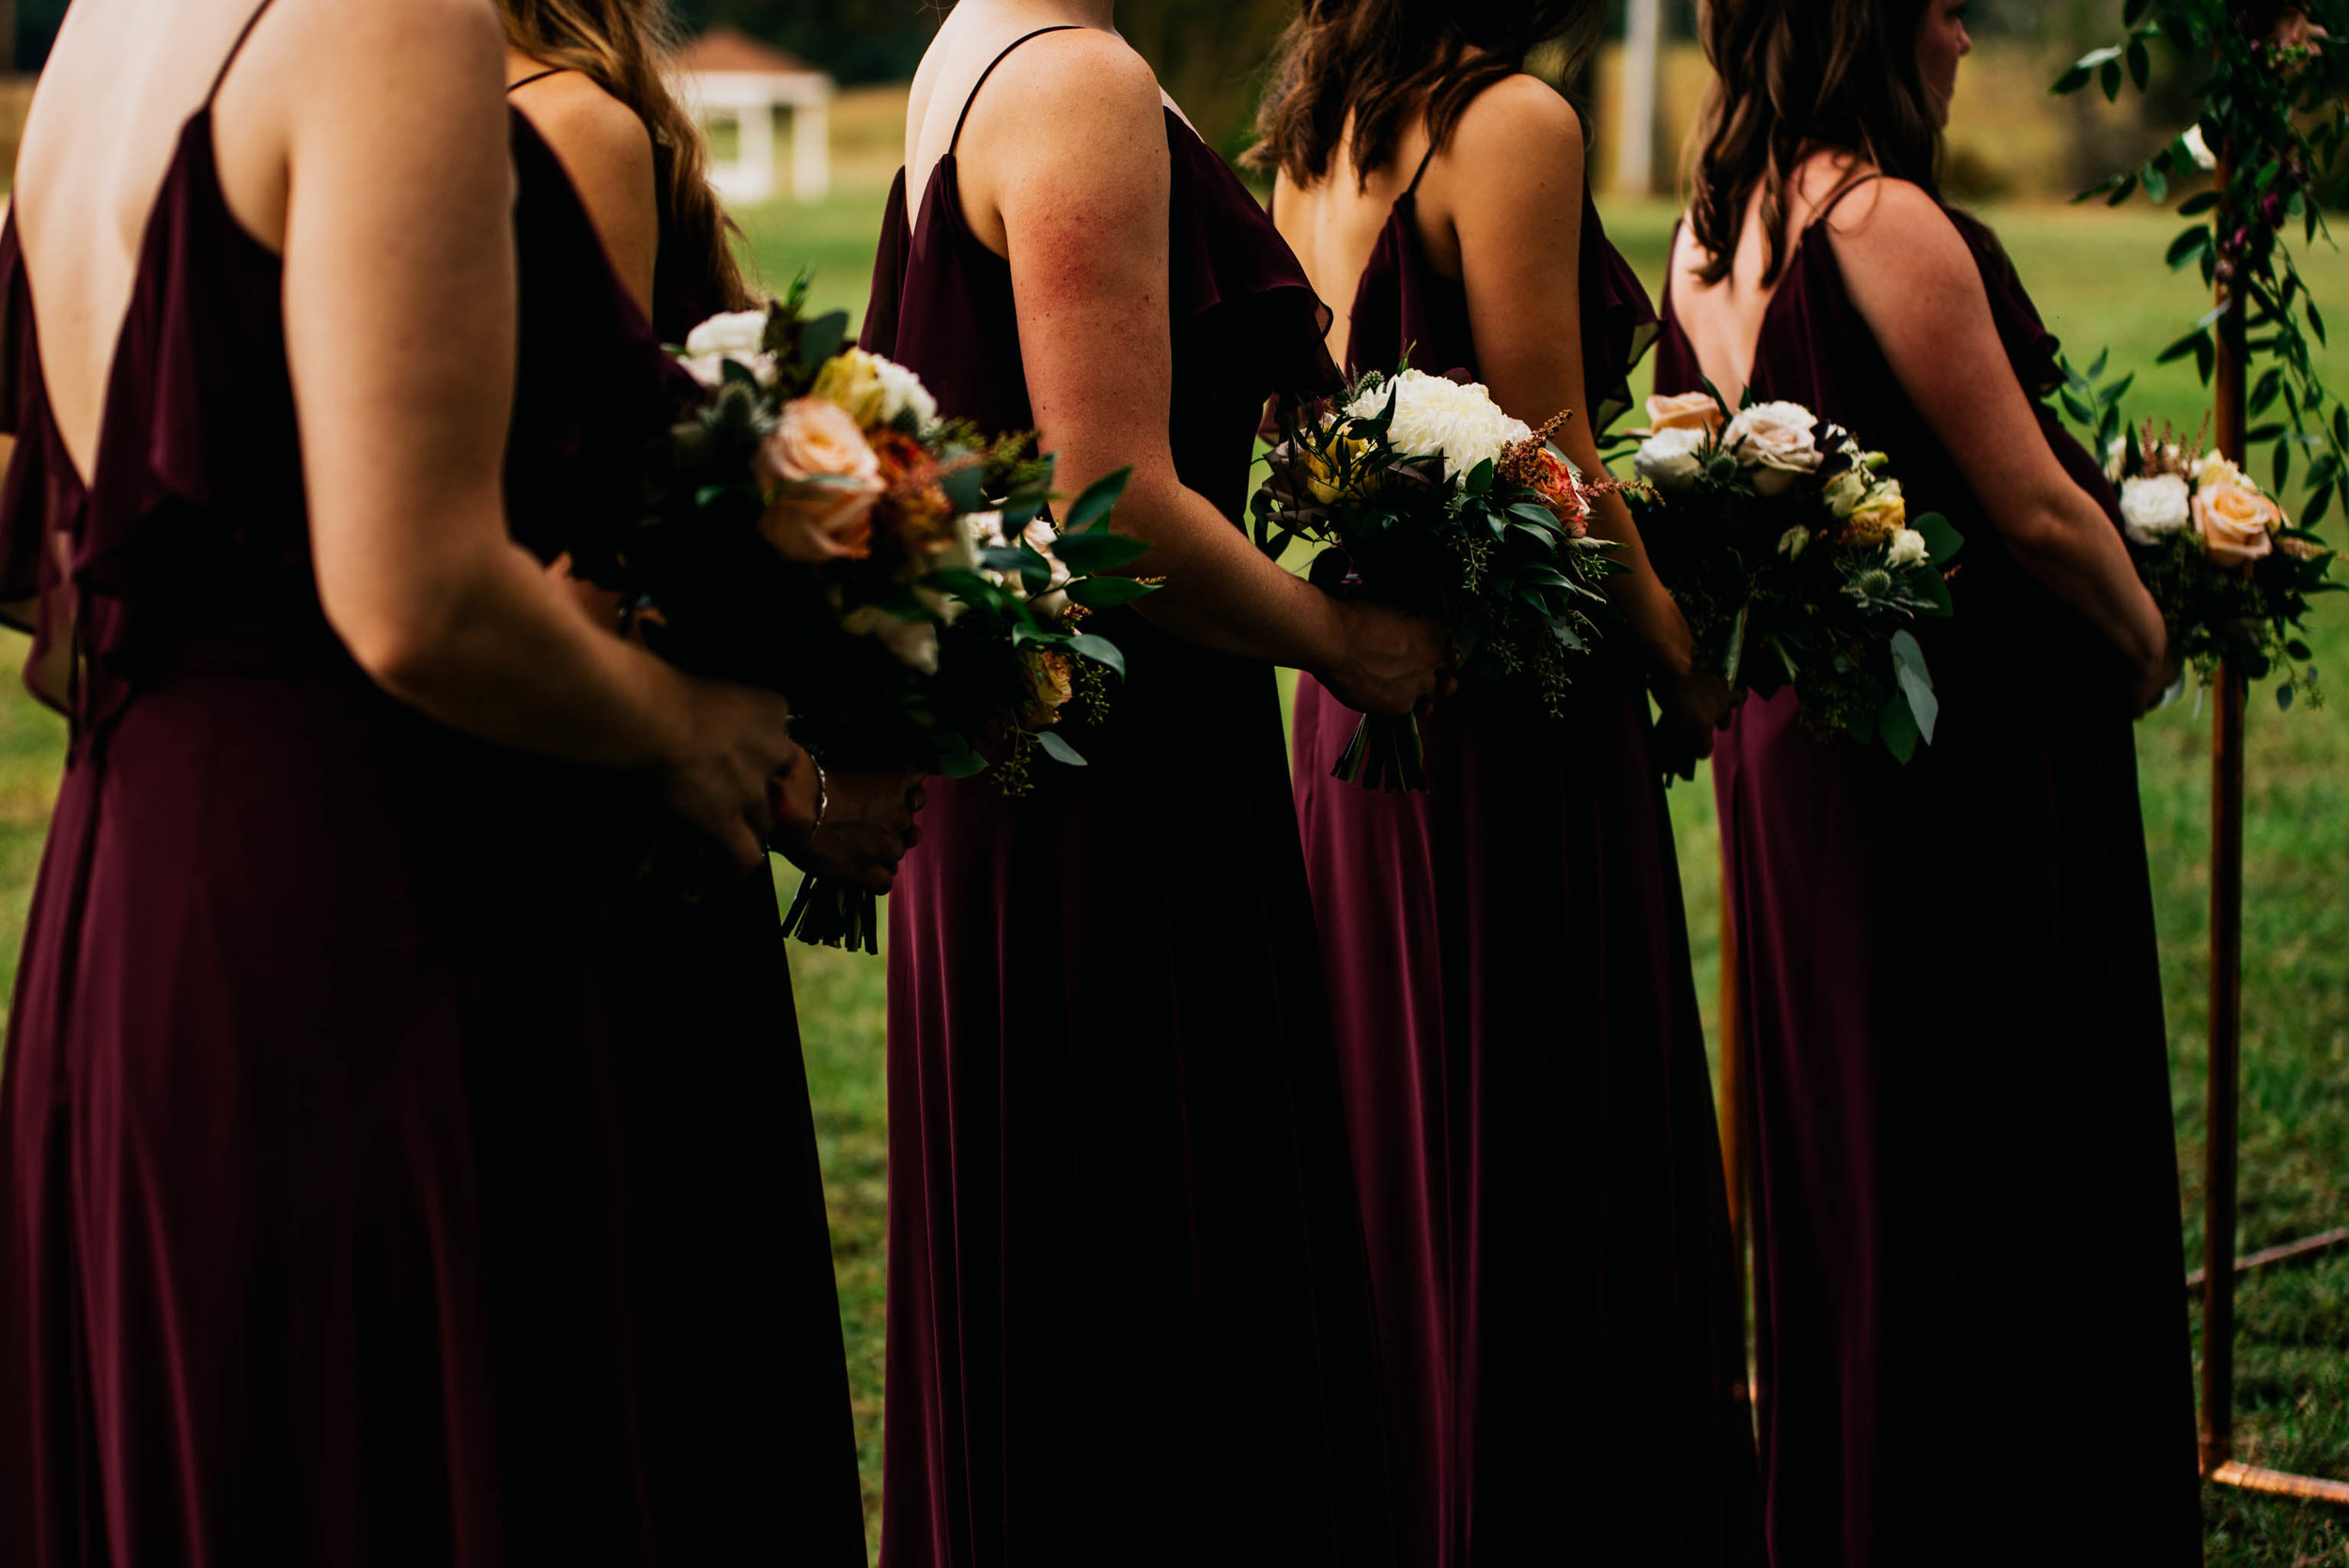 a cropped photo of the bridesmaids dresses and their florals during the wedding ceremony